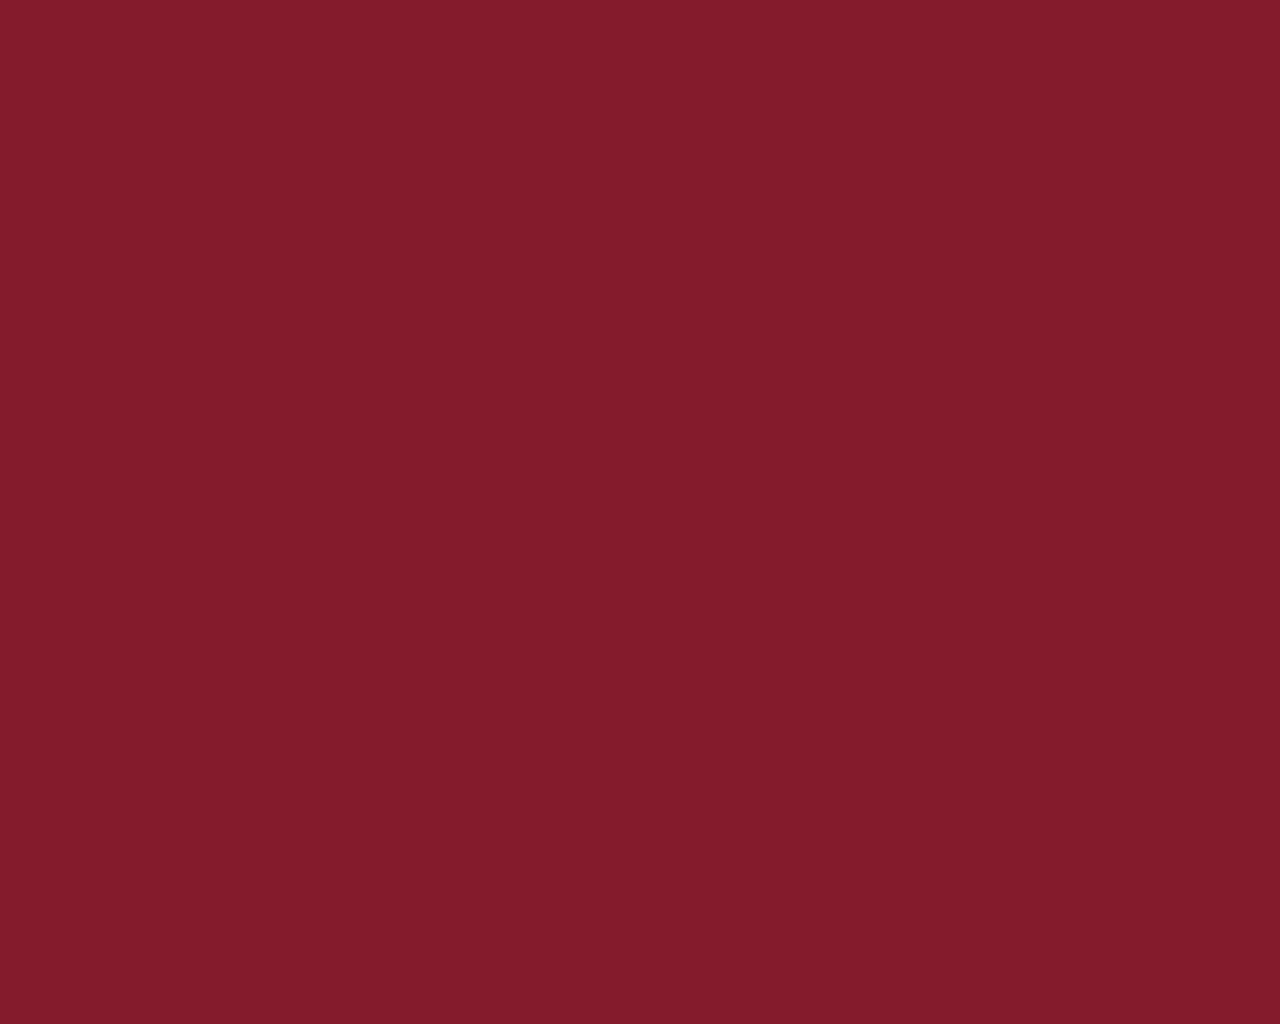 1280x1024 Antique Ruby Solid Color Background